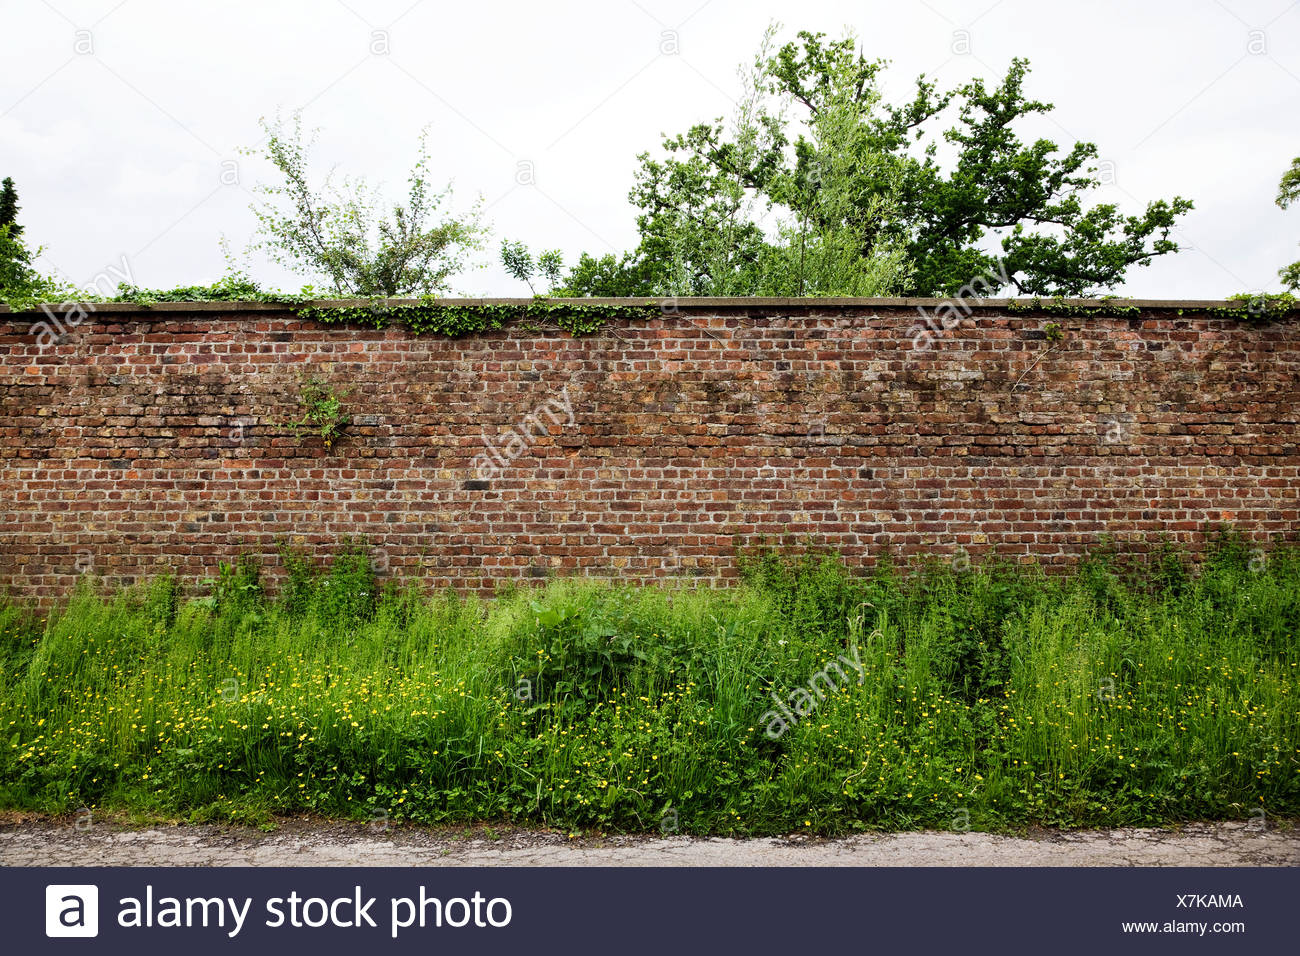 Brick wall and plants - Stock Image